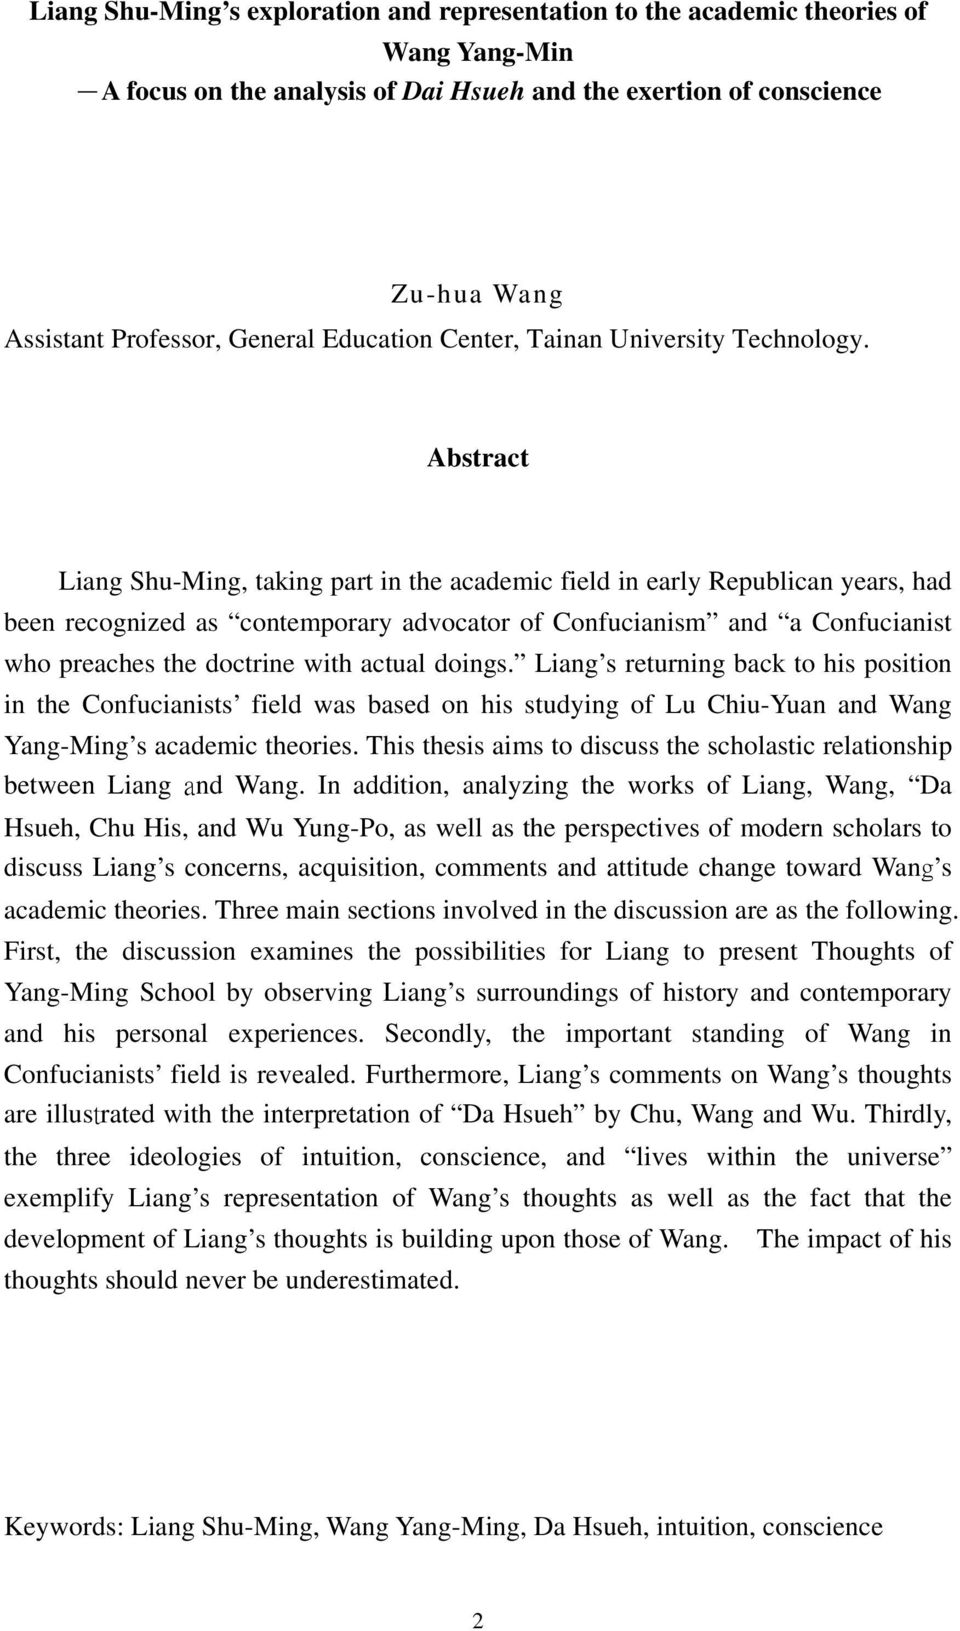 Abstract Liang Shu-Ming, taking part in the academic field in early Republican years, had been recognized as contemporary advocator of Confucianism and a Confucianist who preaches the doctrine with